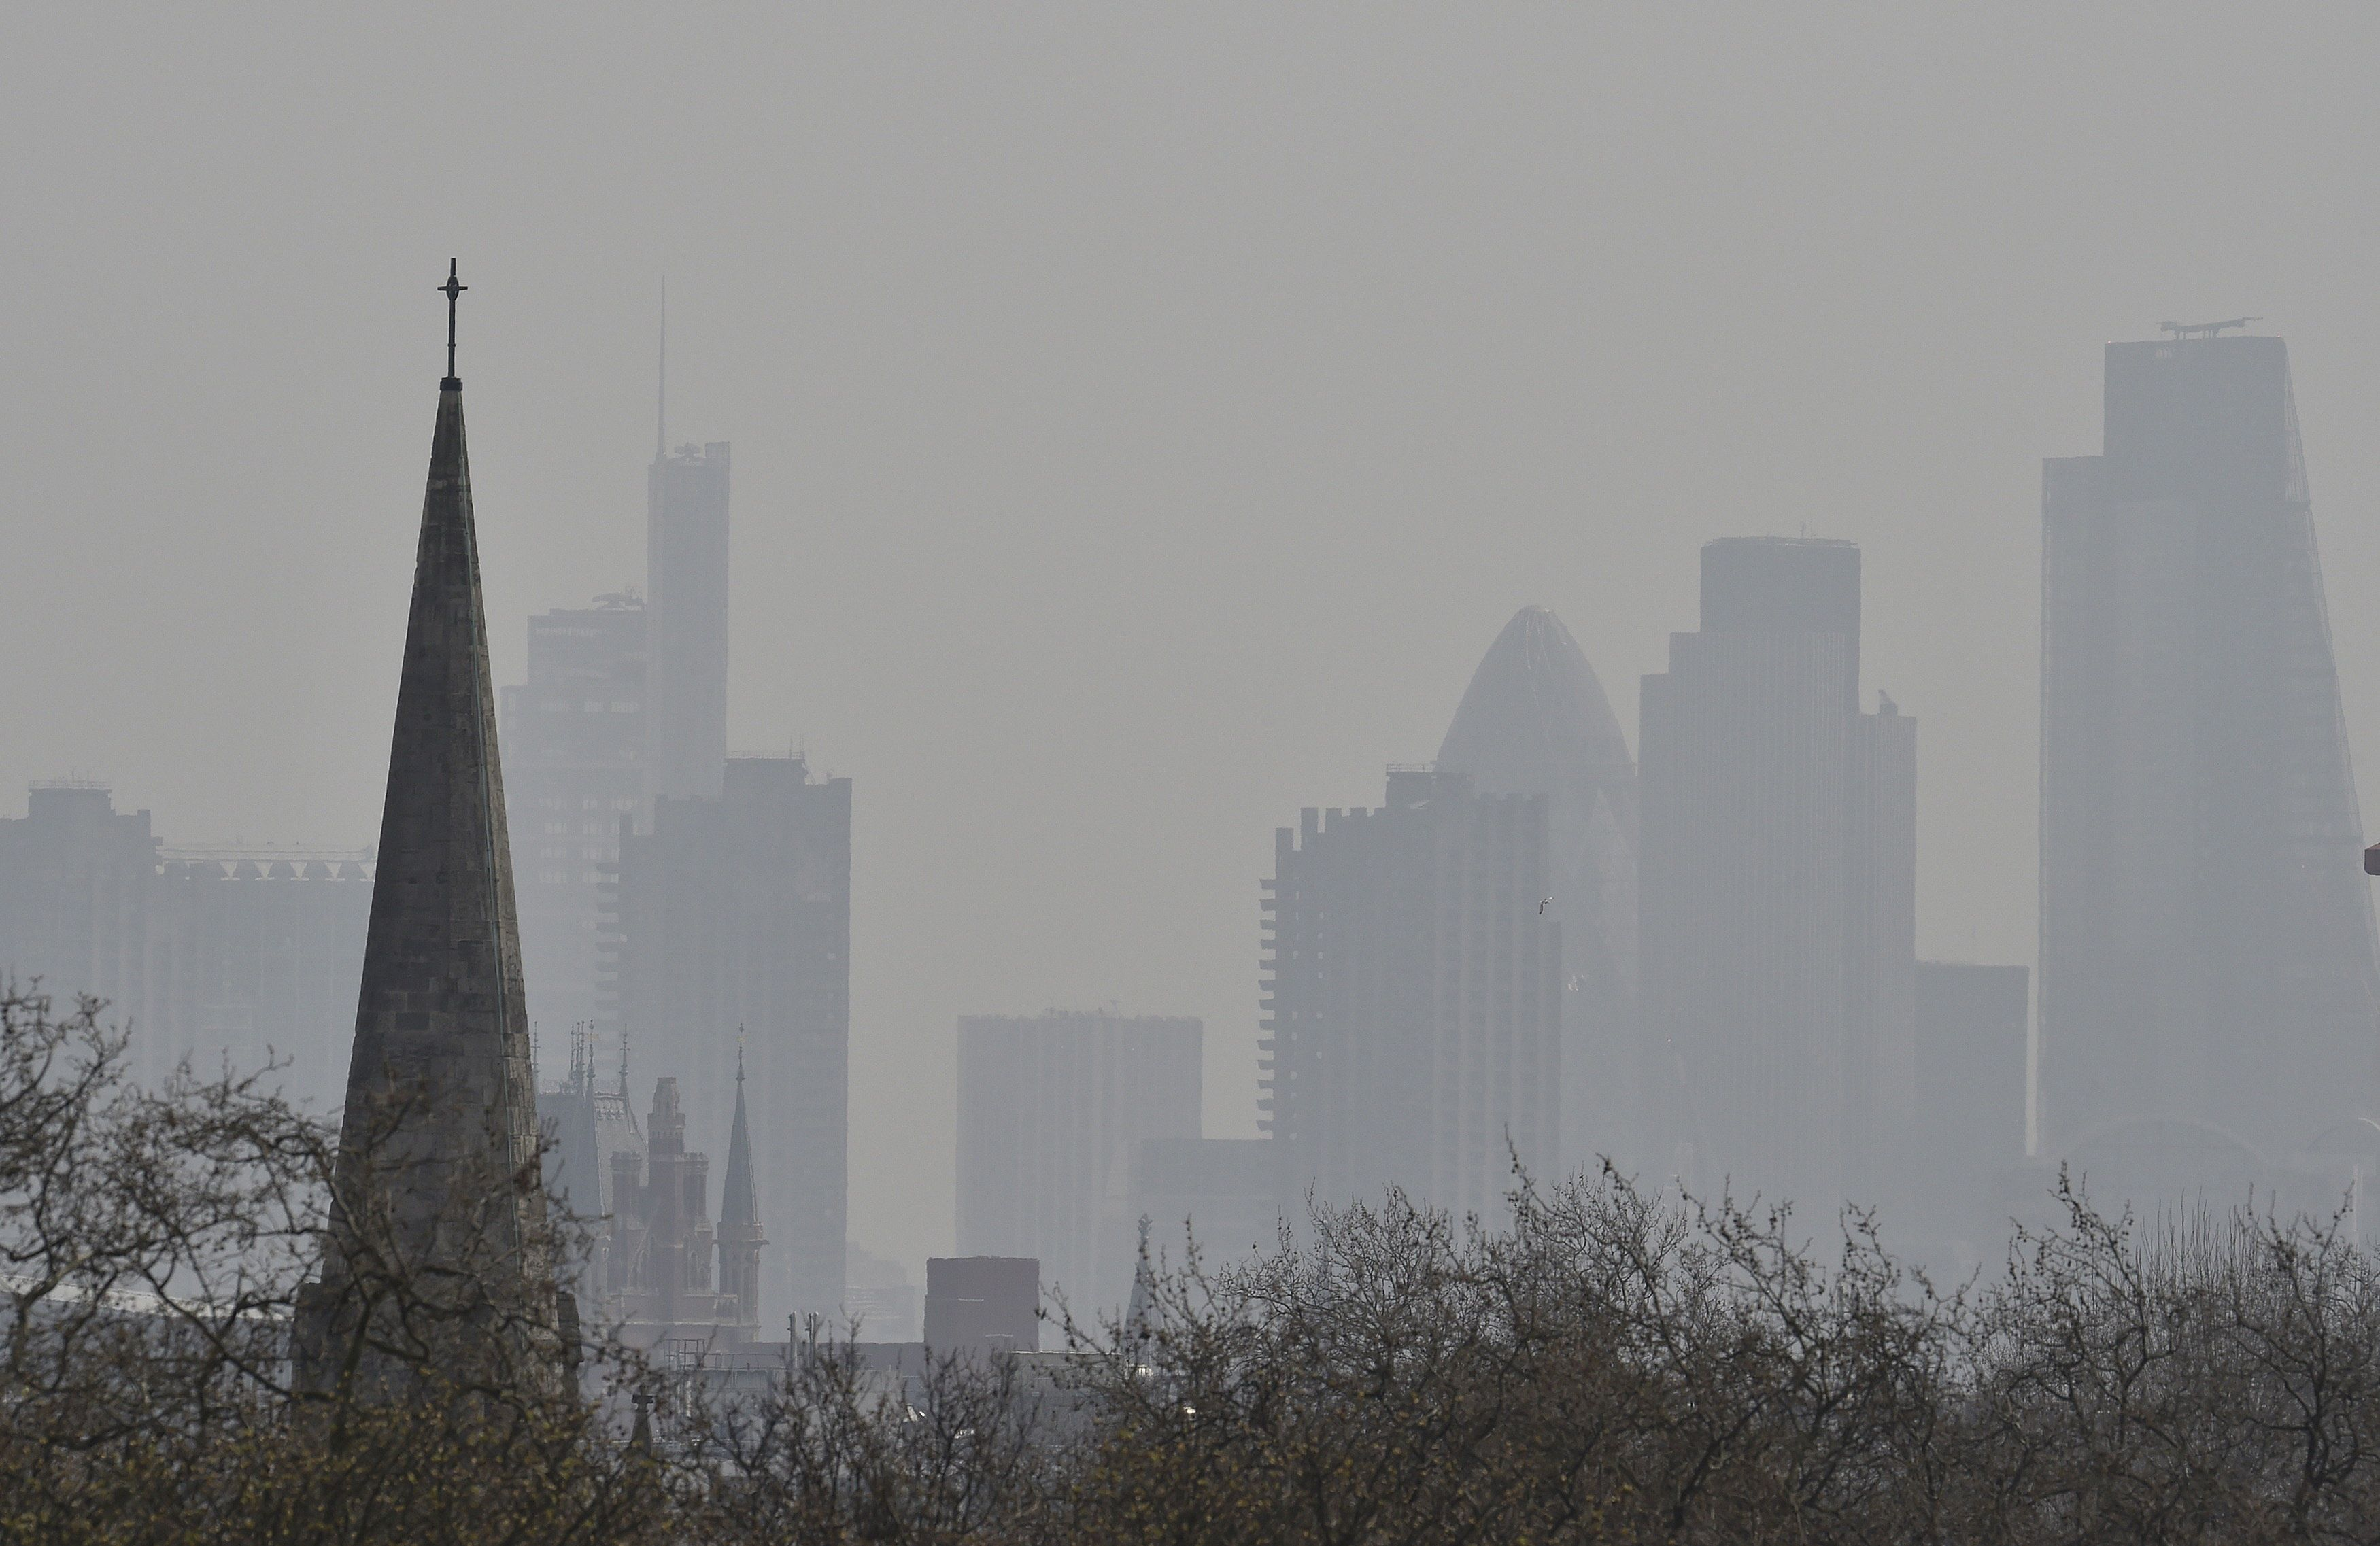 <strong>The UK's poorest communities are being hit the hardest by air pollution; London's financial district is seen above, obscured by air pollution</strong>